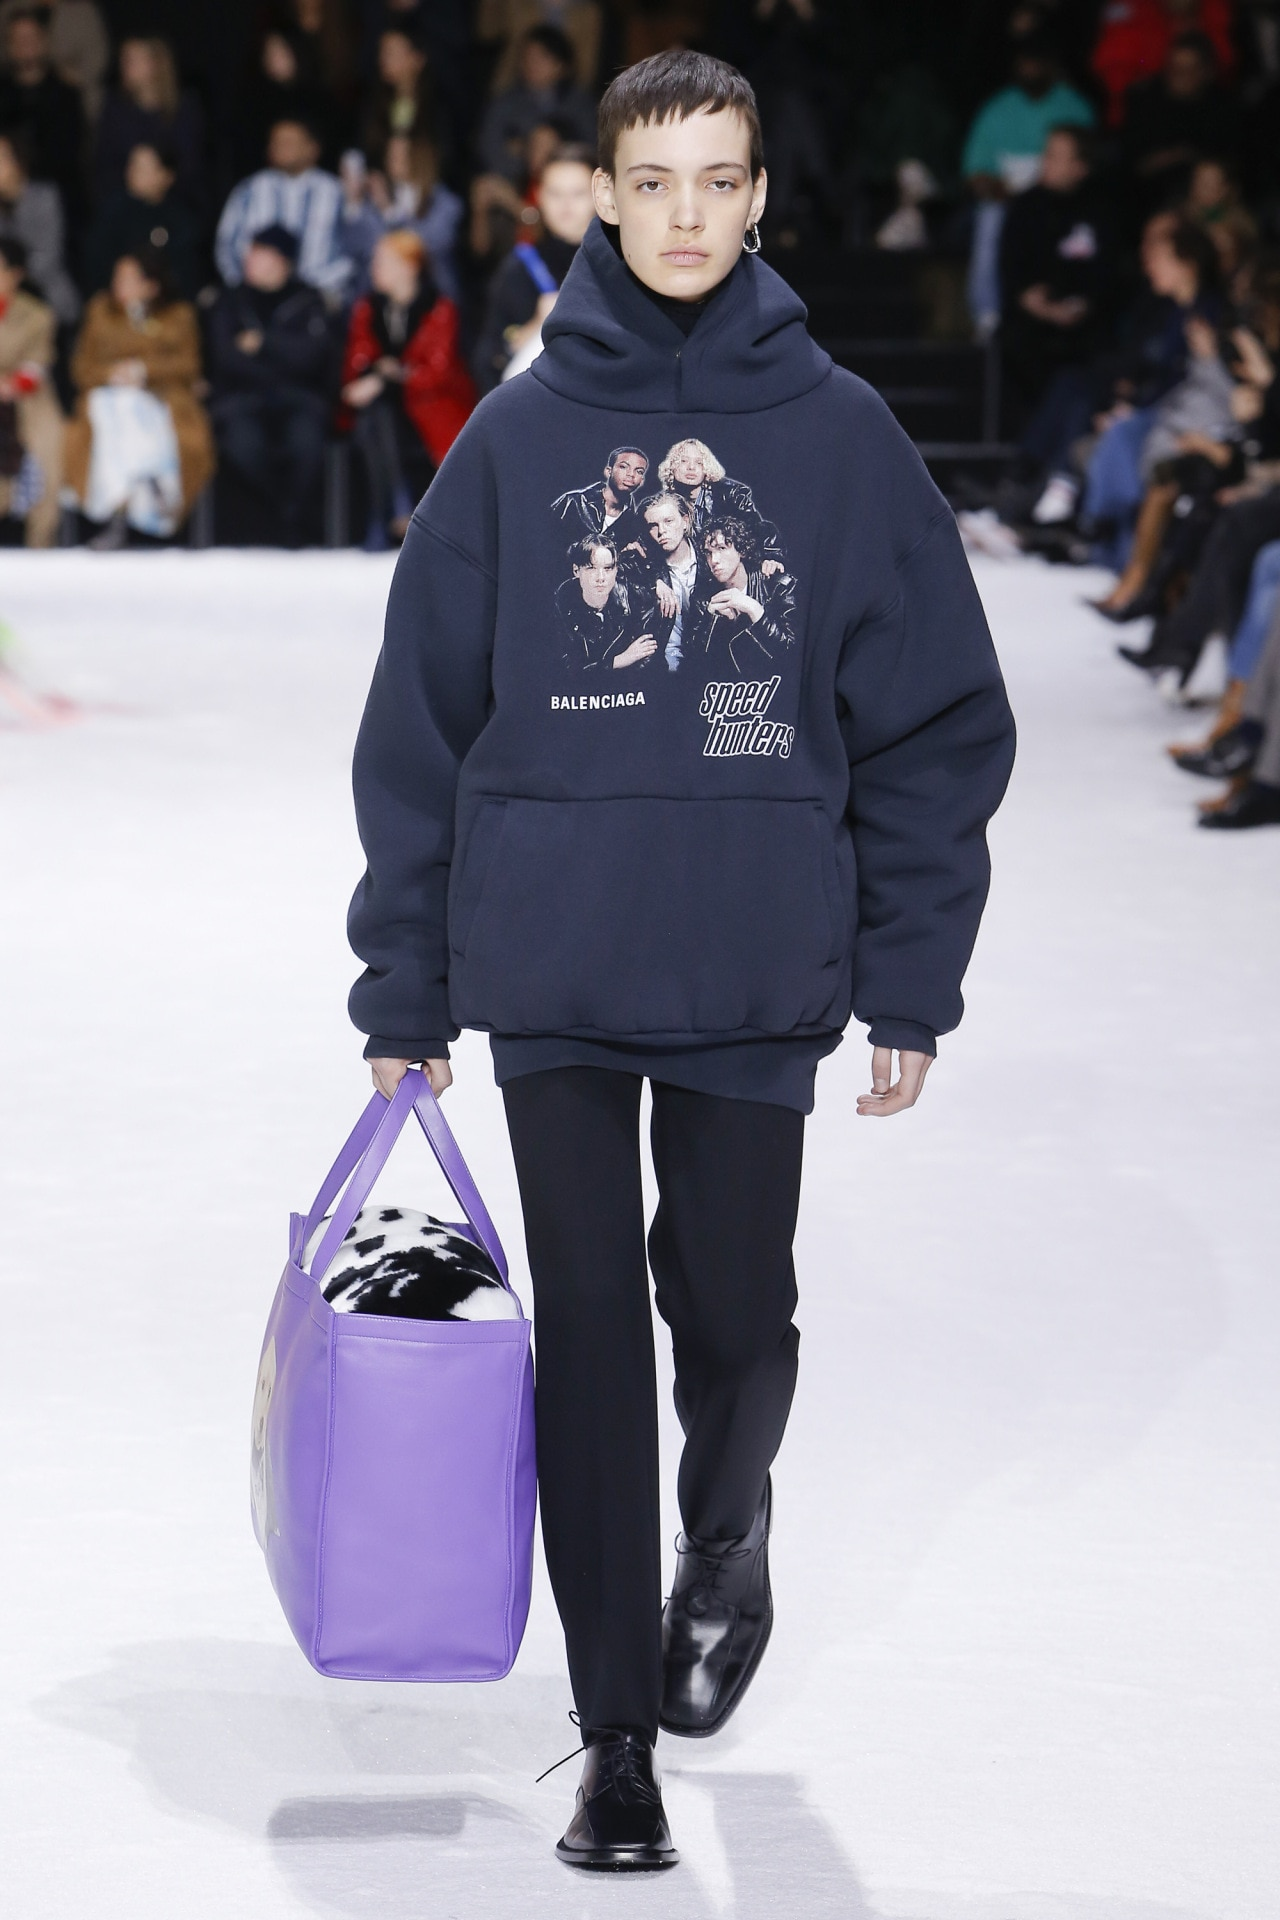 Balenciaga is being sued for copyright infringement, again